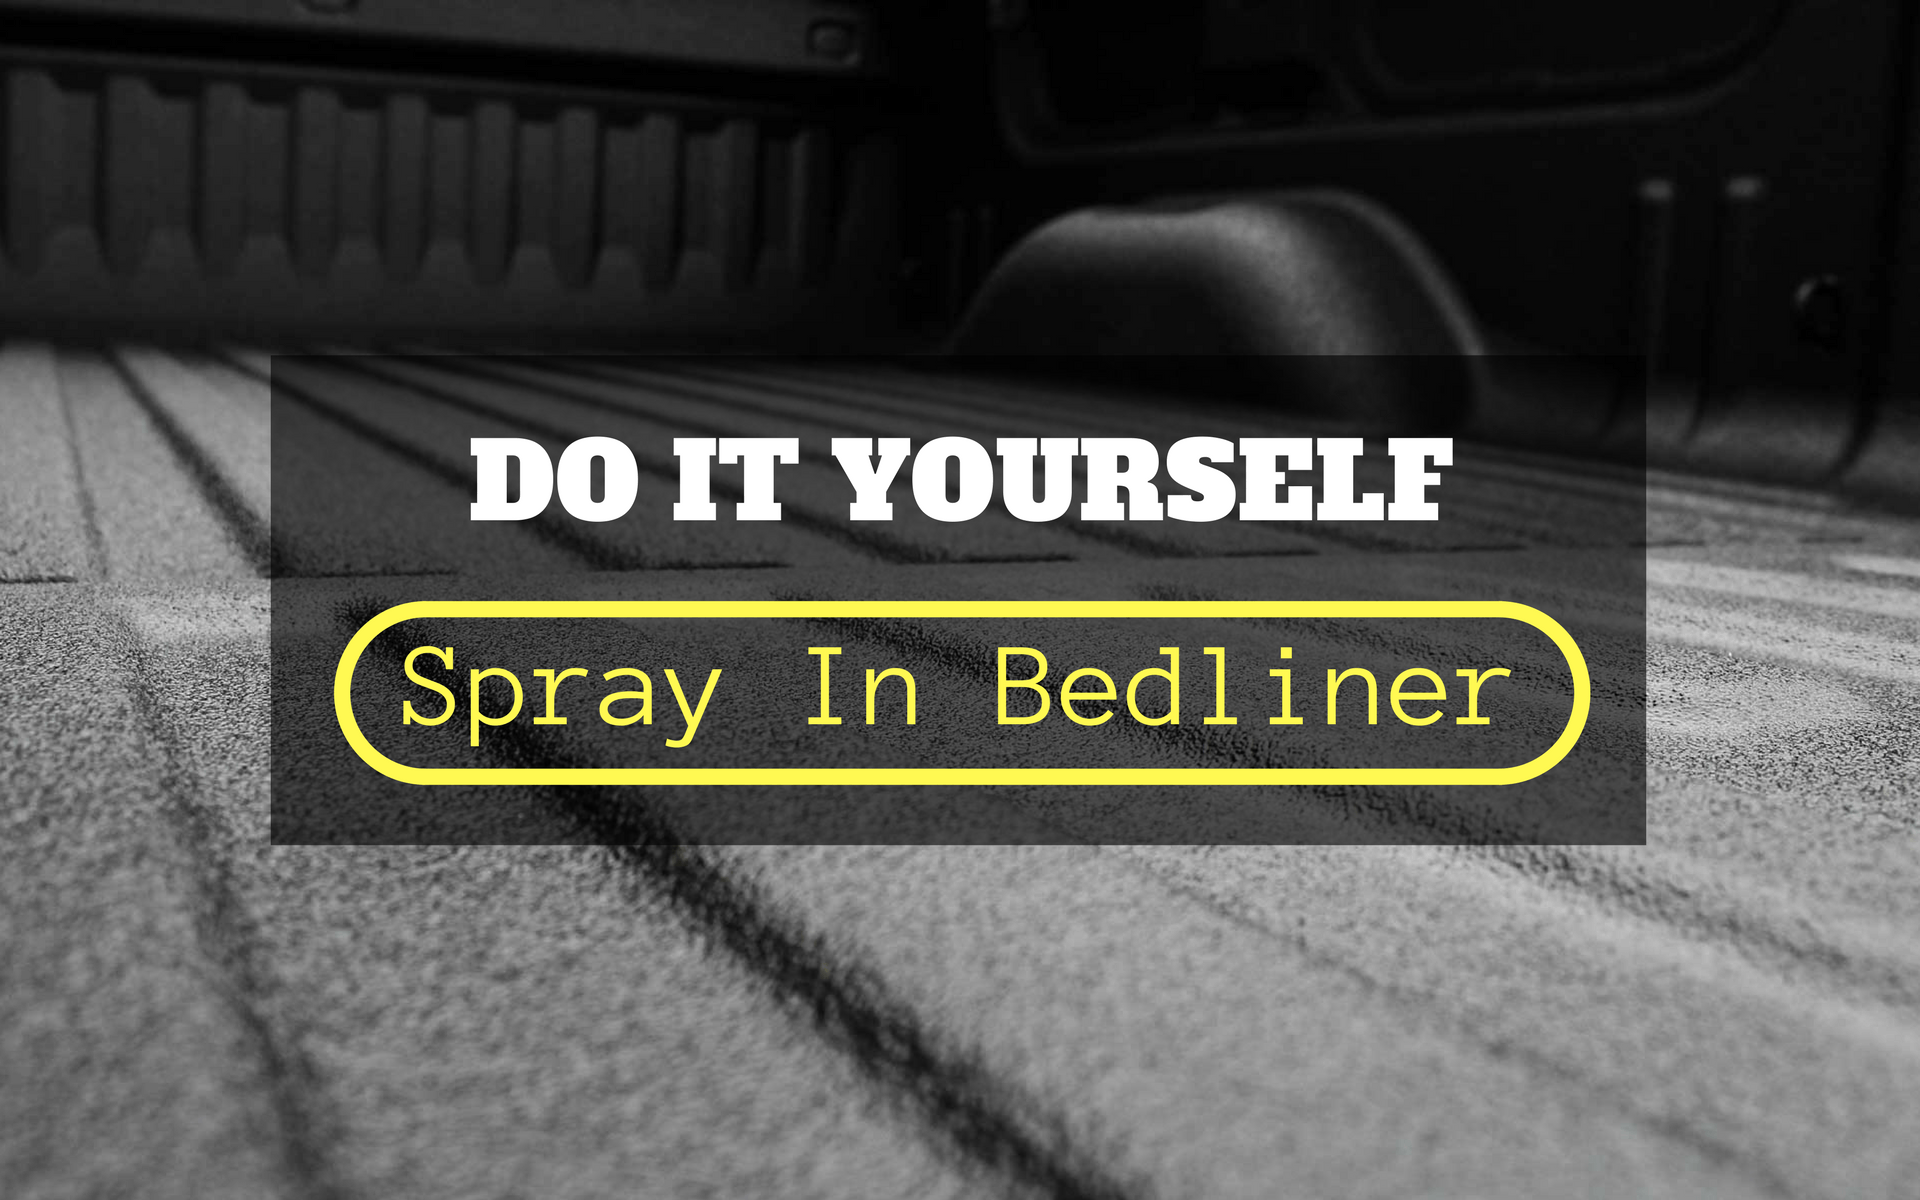 Spray On Bed Liner >> Do It Yourself Spray In Bedliner - Automotive Blog